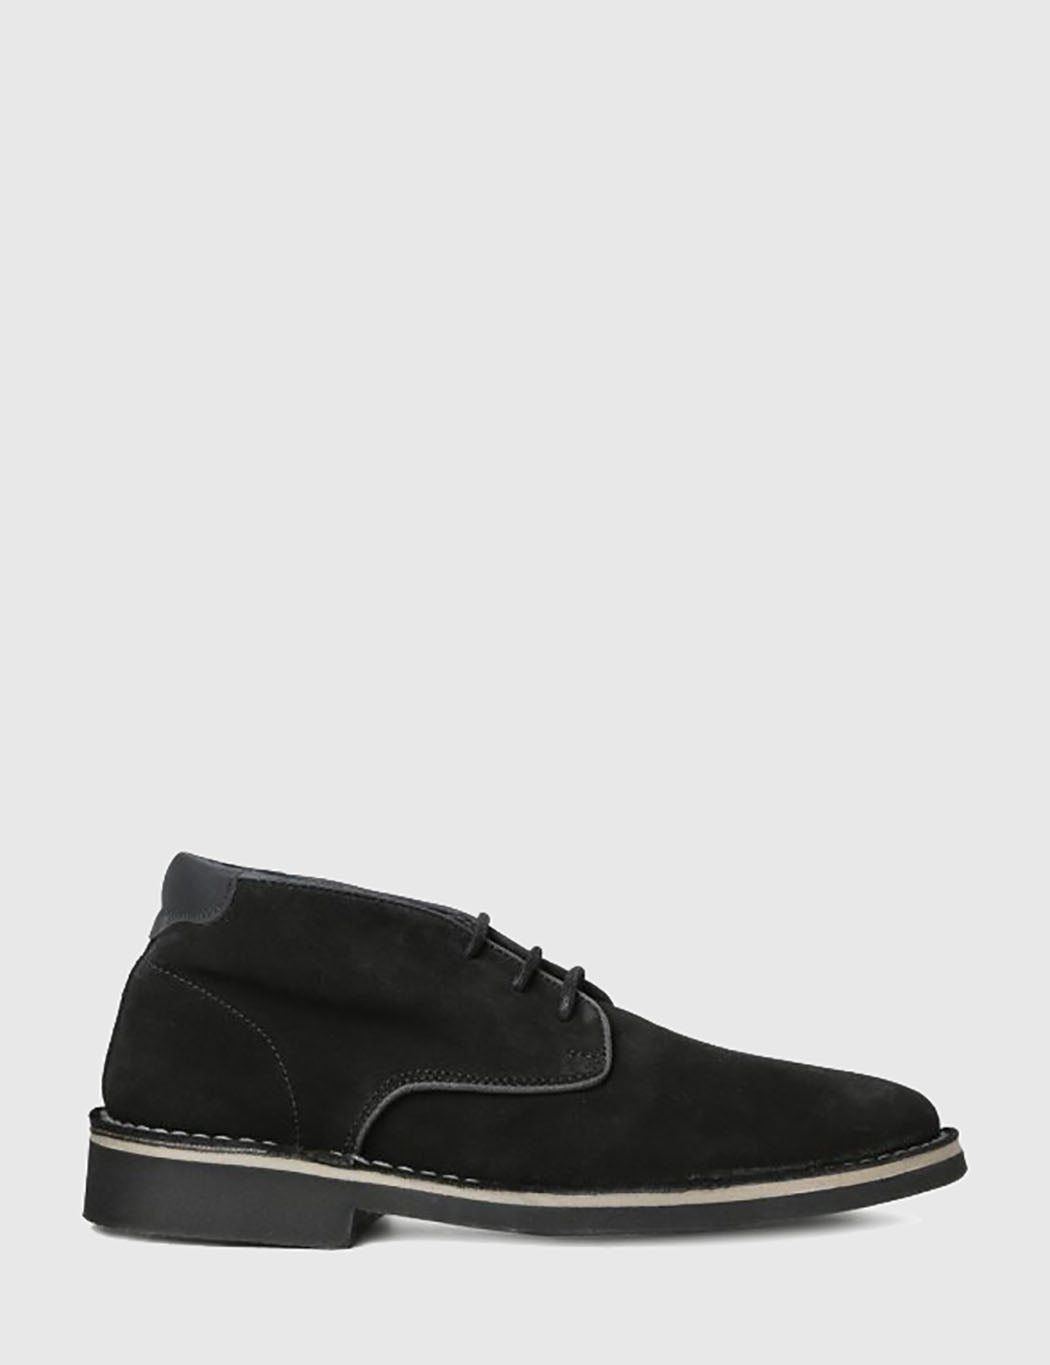 Hudson Margrey Chukka Boots (Suede) - Black